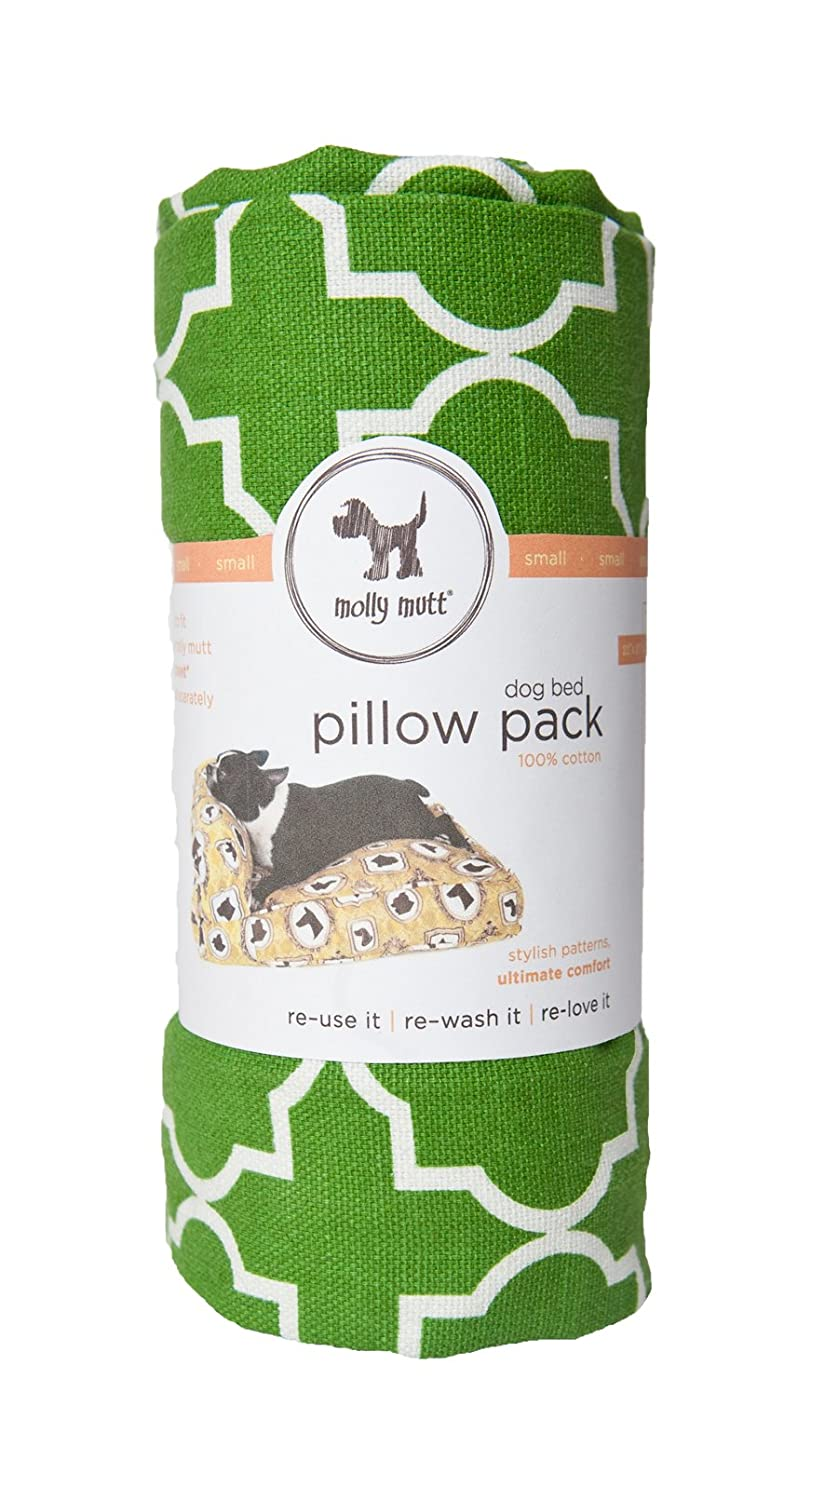 100/% Cotton molly mutt Dog Bed Pillow Pack Duvet Washable Durable